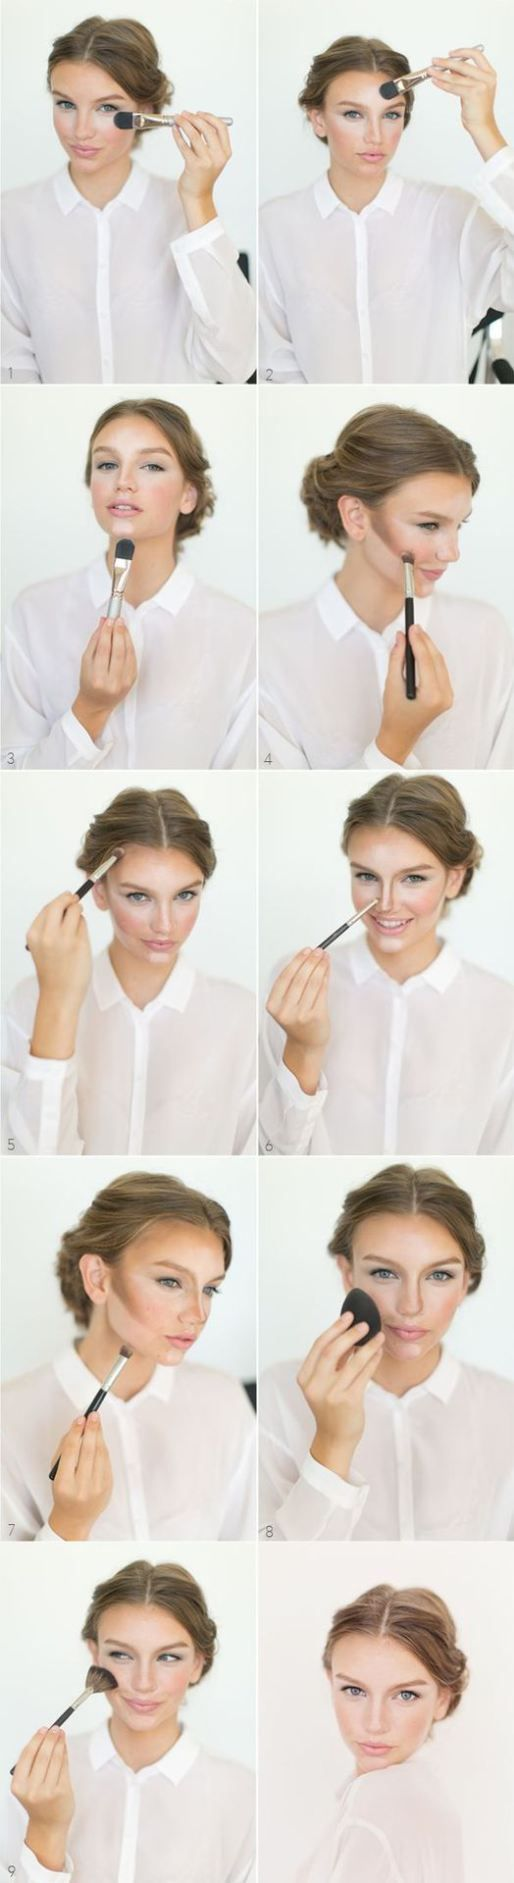 Contouring 101.  Lots of work, lots of product, lots of brushes!  Definitely not an every day routine, but interesting nonetheless...